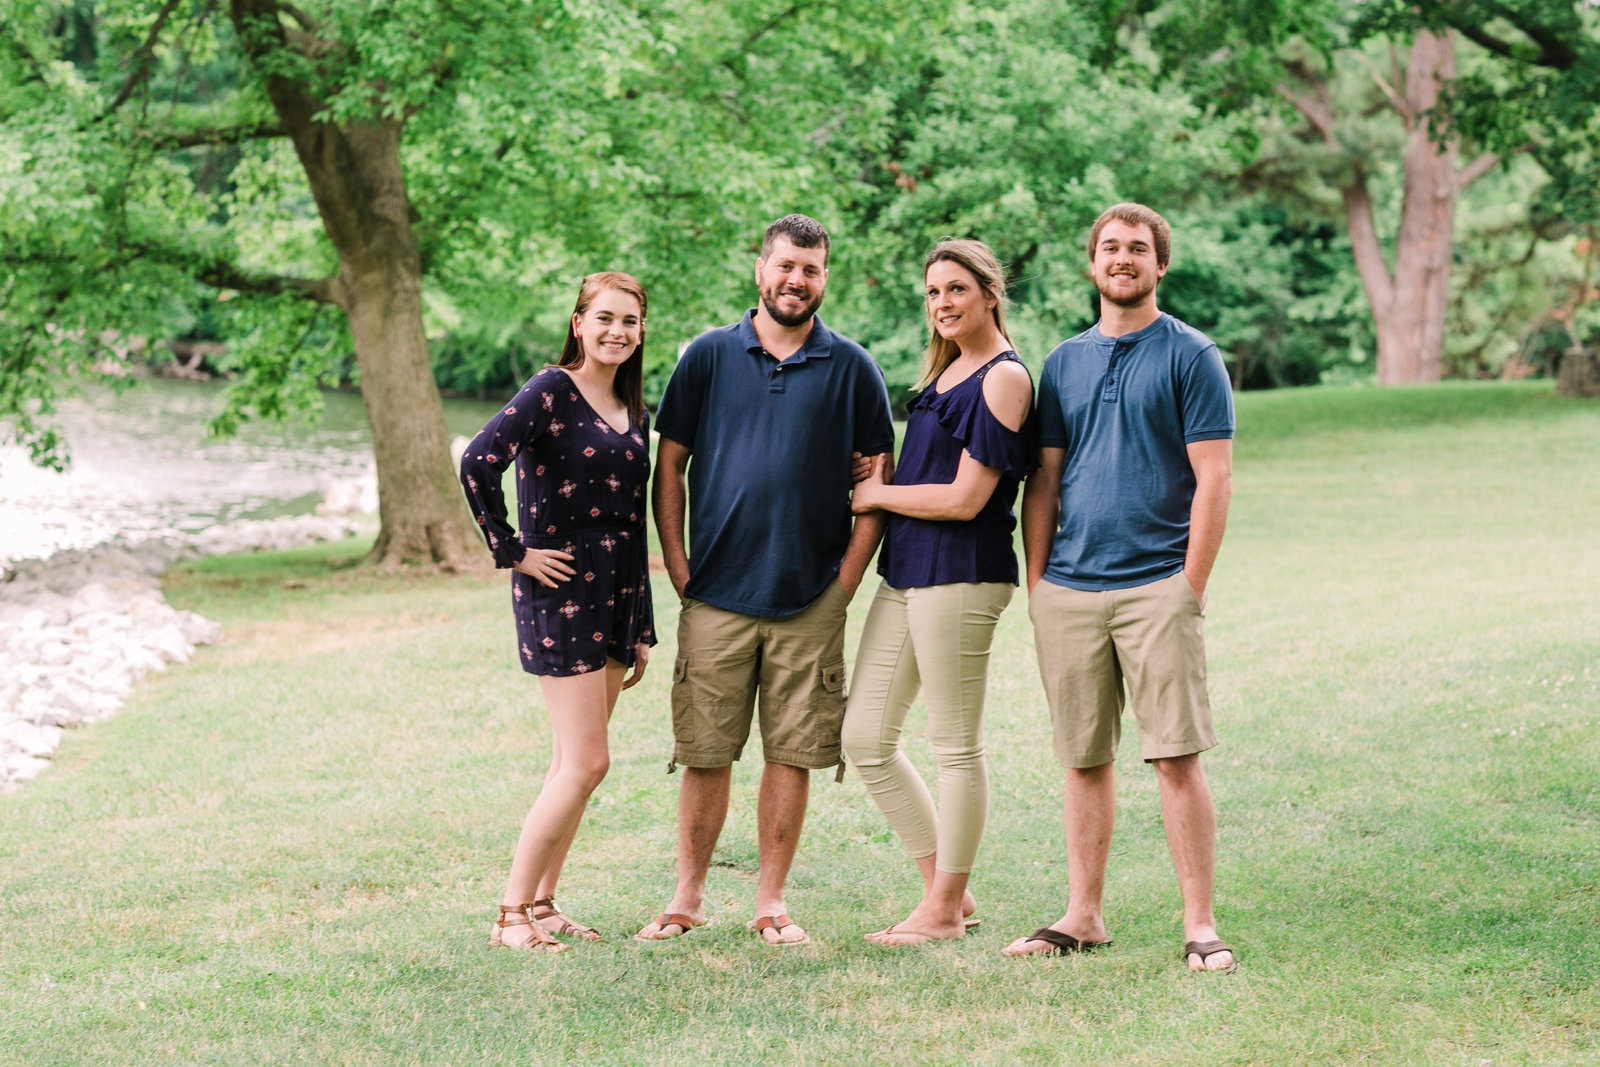 Cange-Family-photos-by-Jackelynn-Noel-Photography-7